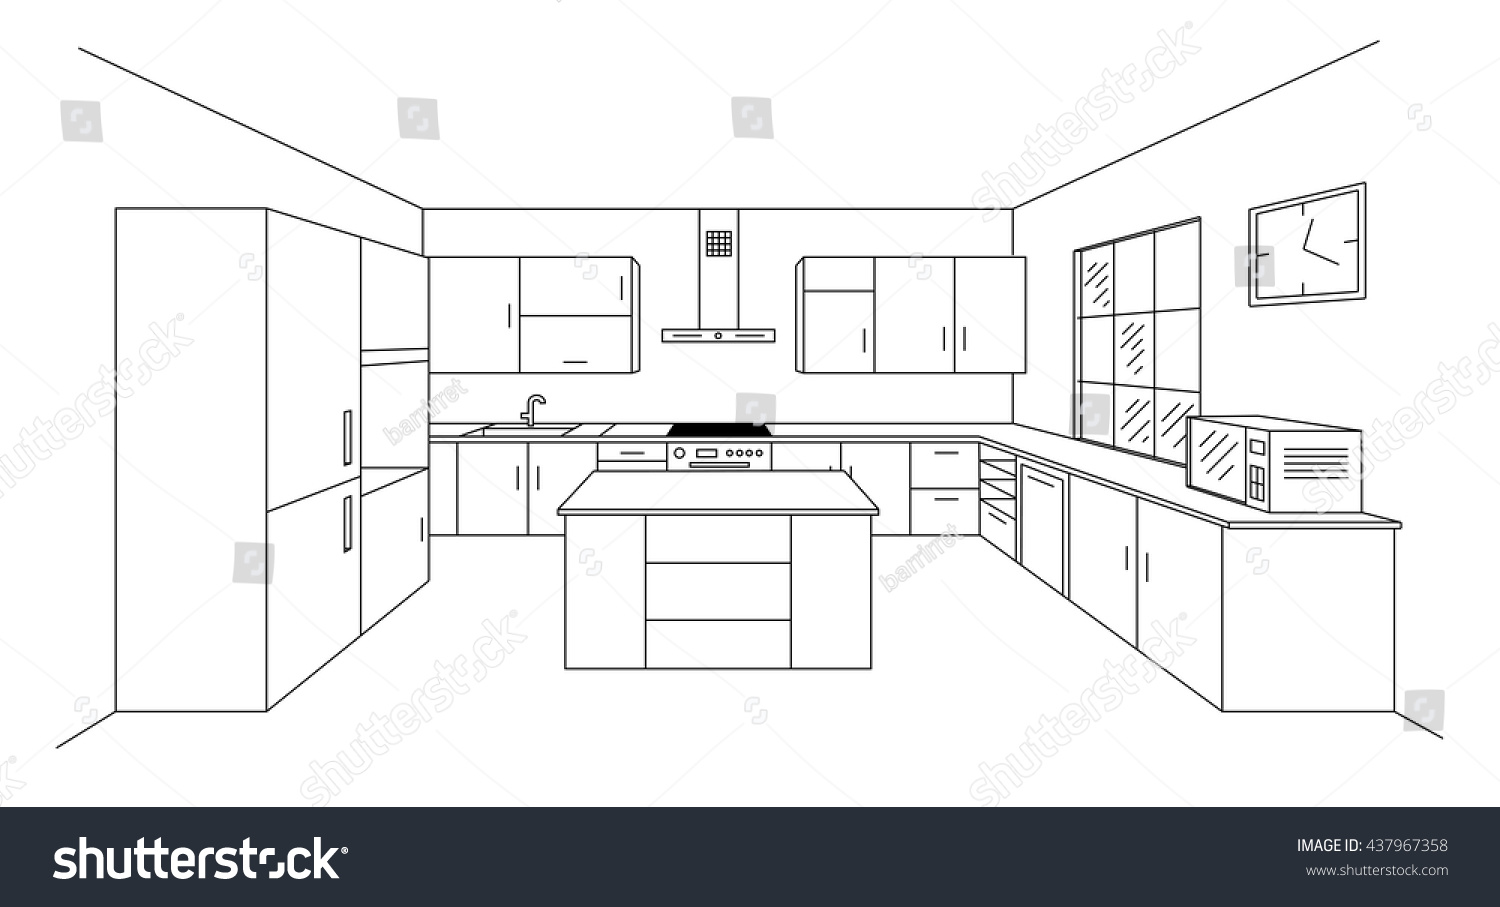 Sketch Modern Kitchen Plan With Island. Single Point Perspective Line  Drawing. Kitchen Project Interior